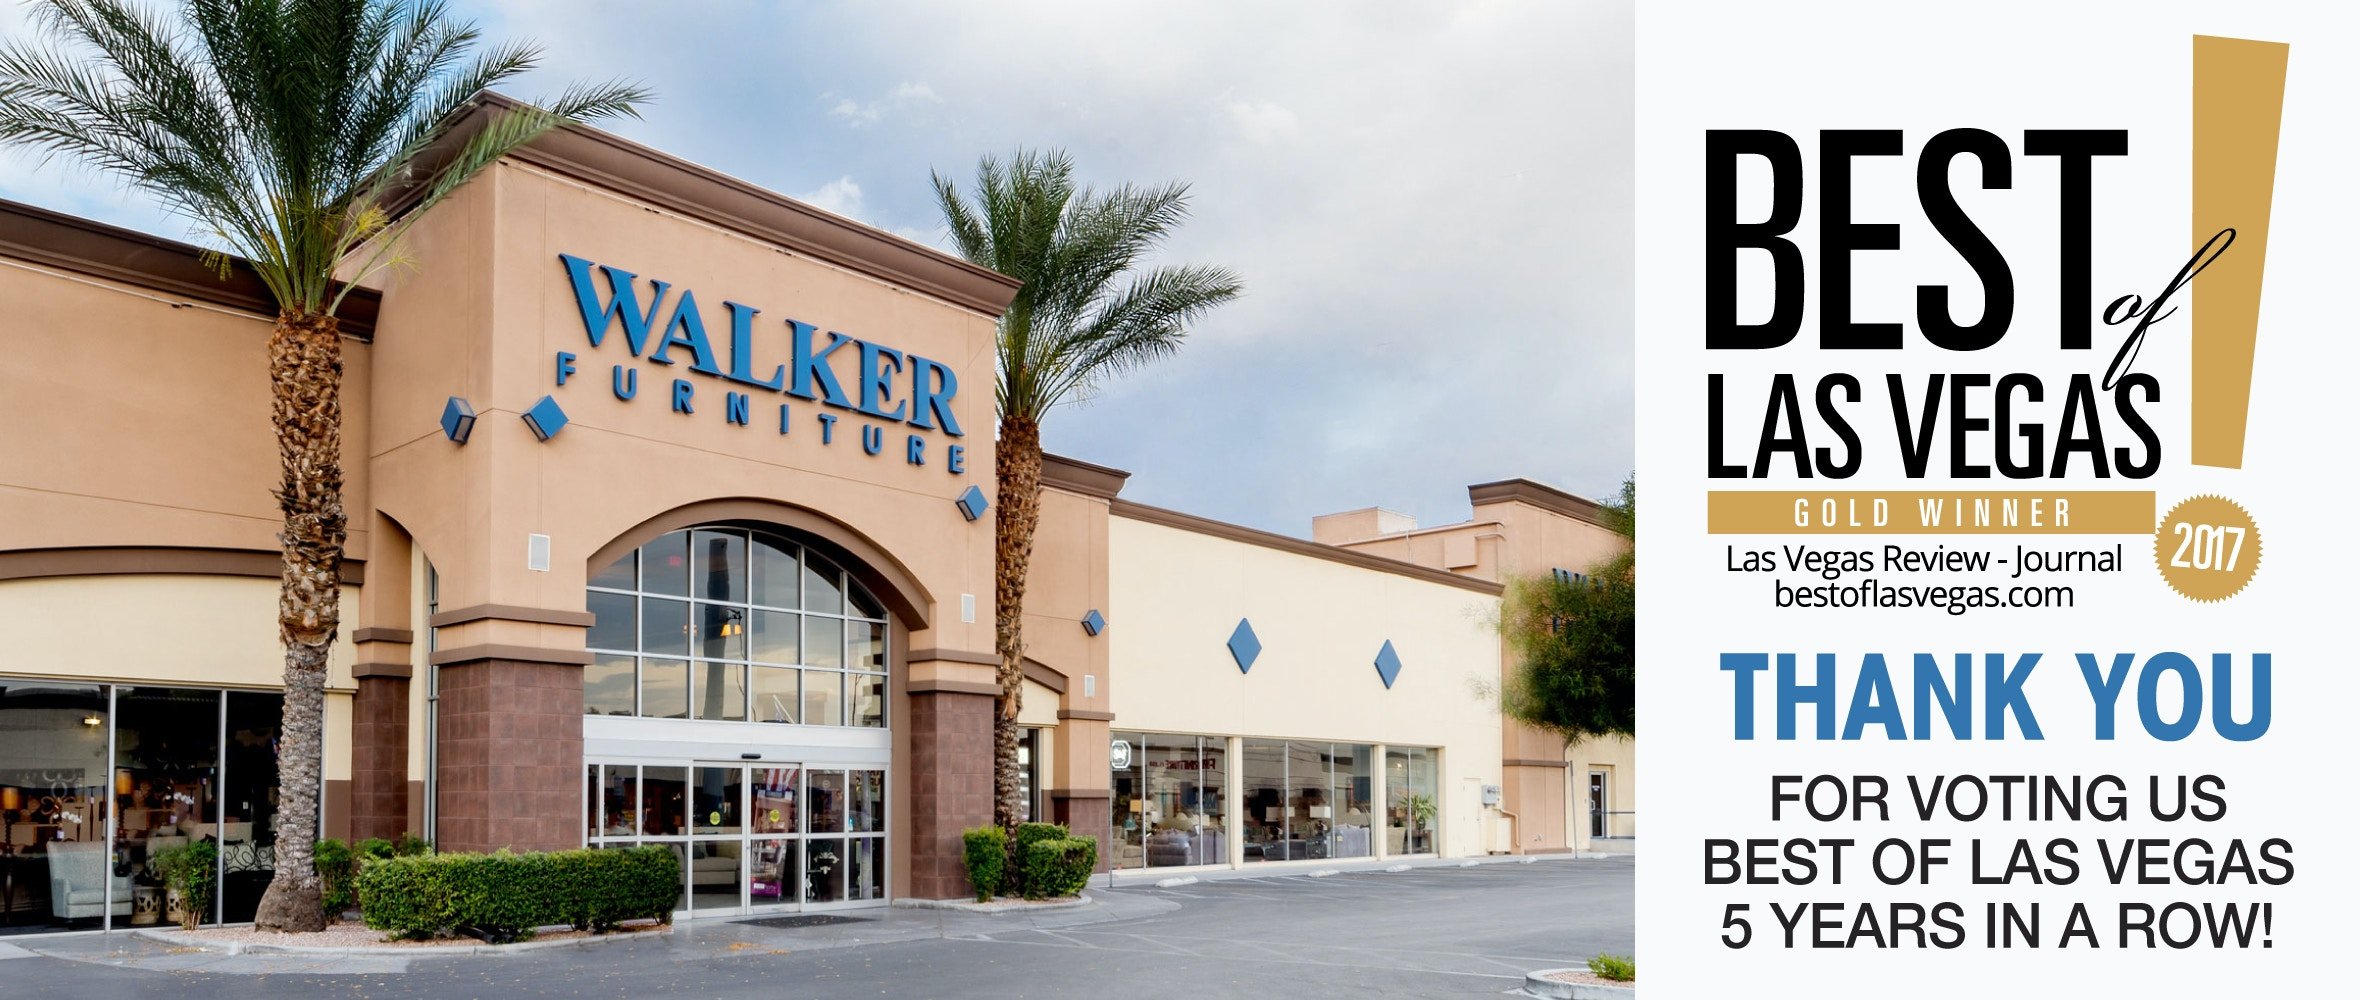 Awesome Thank You For Voting Walker Furniture Best Of Las Vegas 5 Years In A Row!